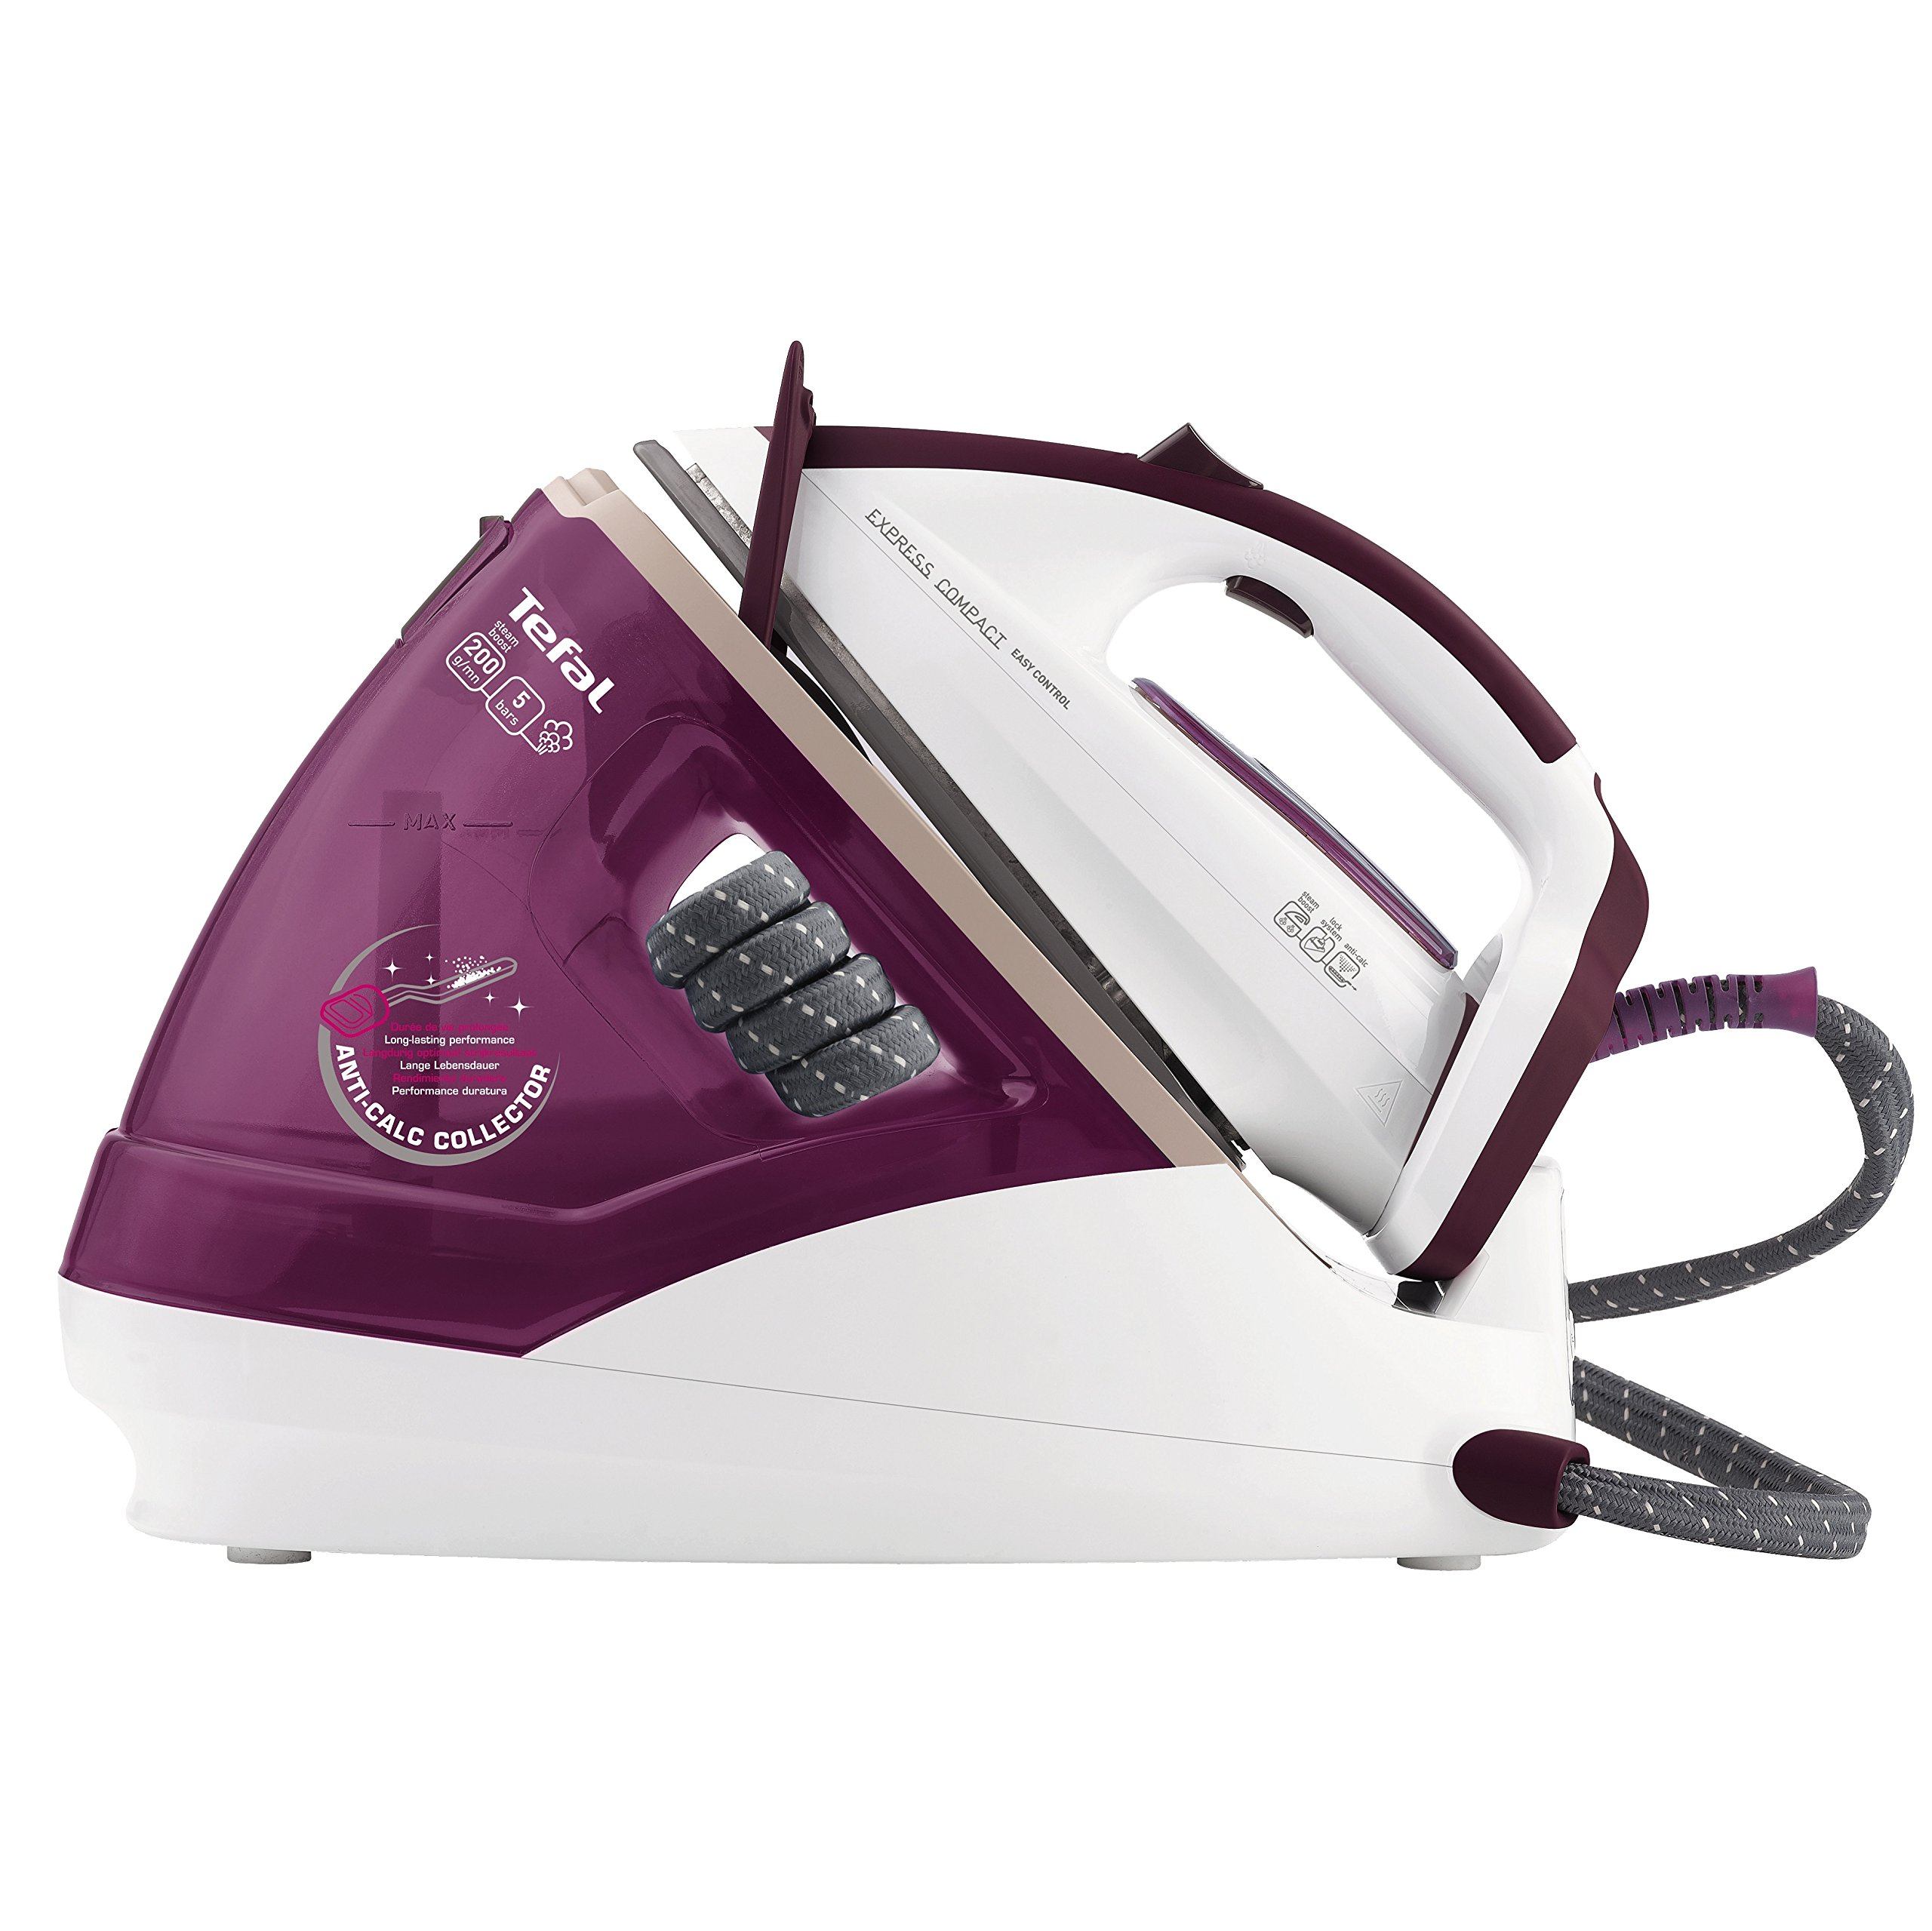 Tefal GV7620 Express pact High Pressure Steam Generator Iron